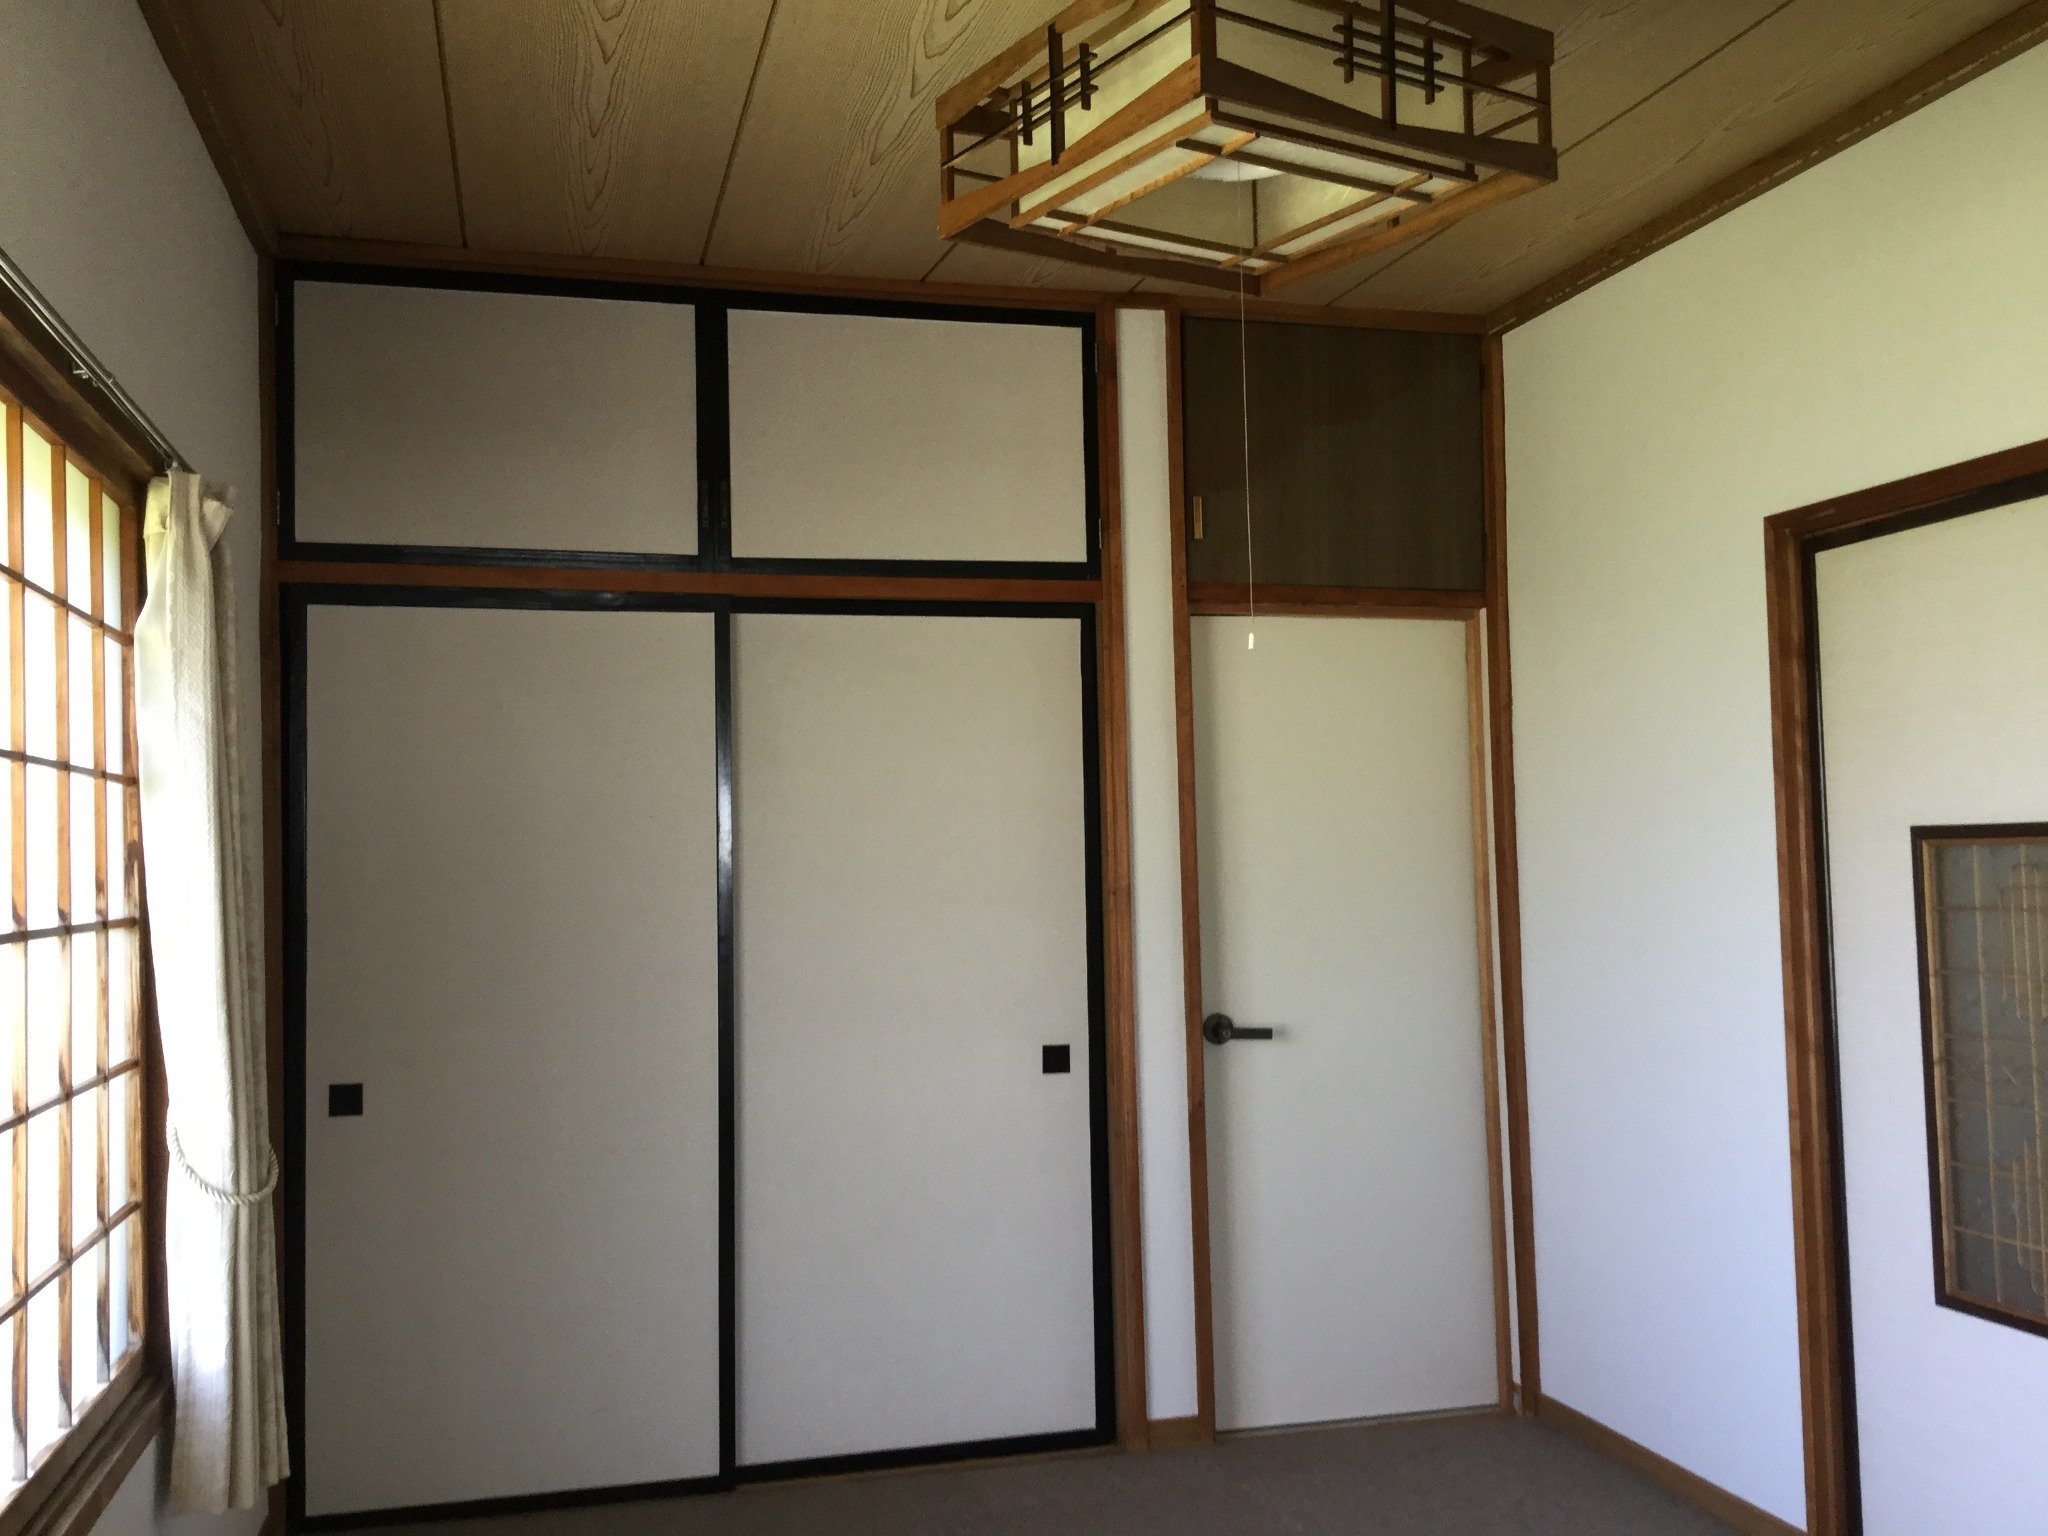 【Japanese-style room】